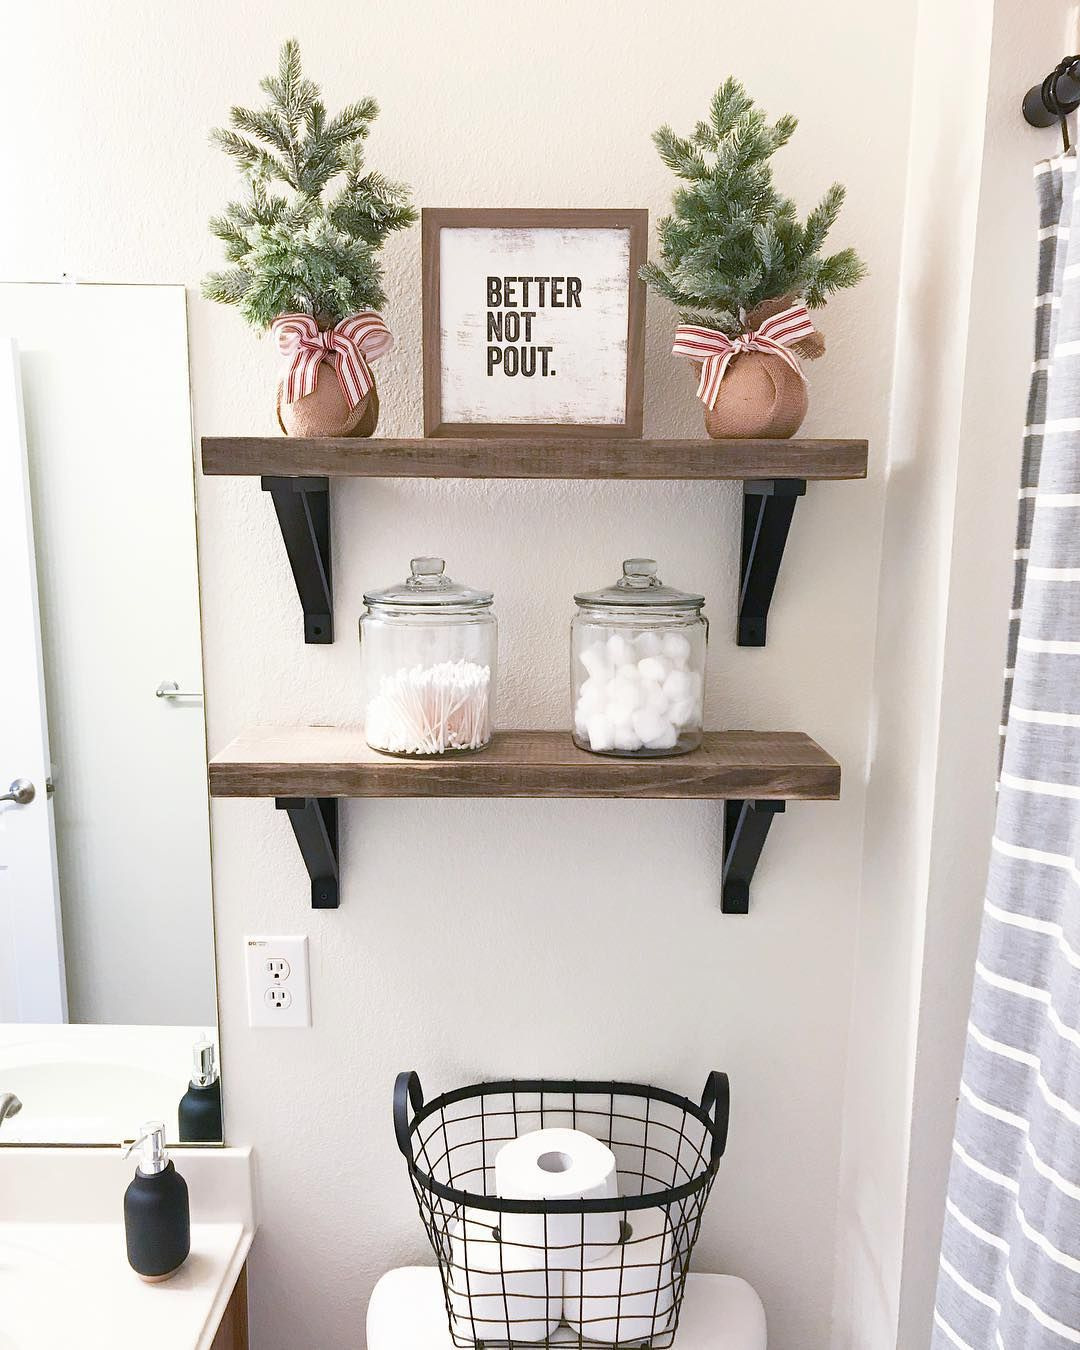 Christmas Decor on the Toilet Shelving in Bathroom via simply sweet designs